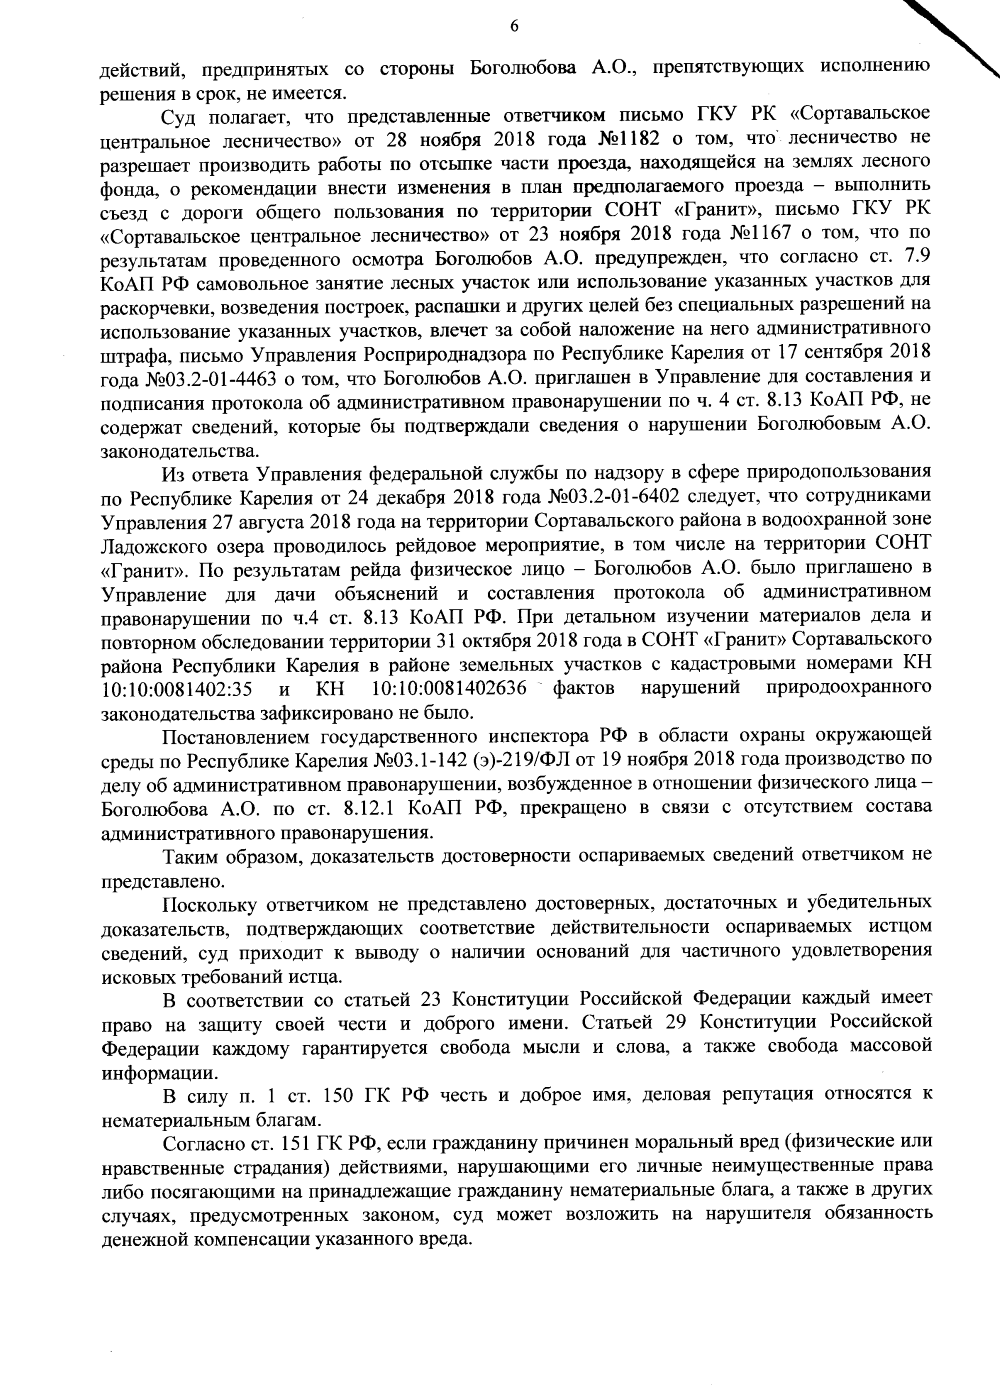 https://sontgranit.ru/forum/img/20190109-8.png